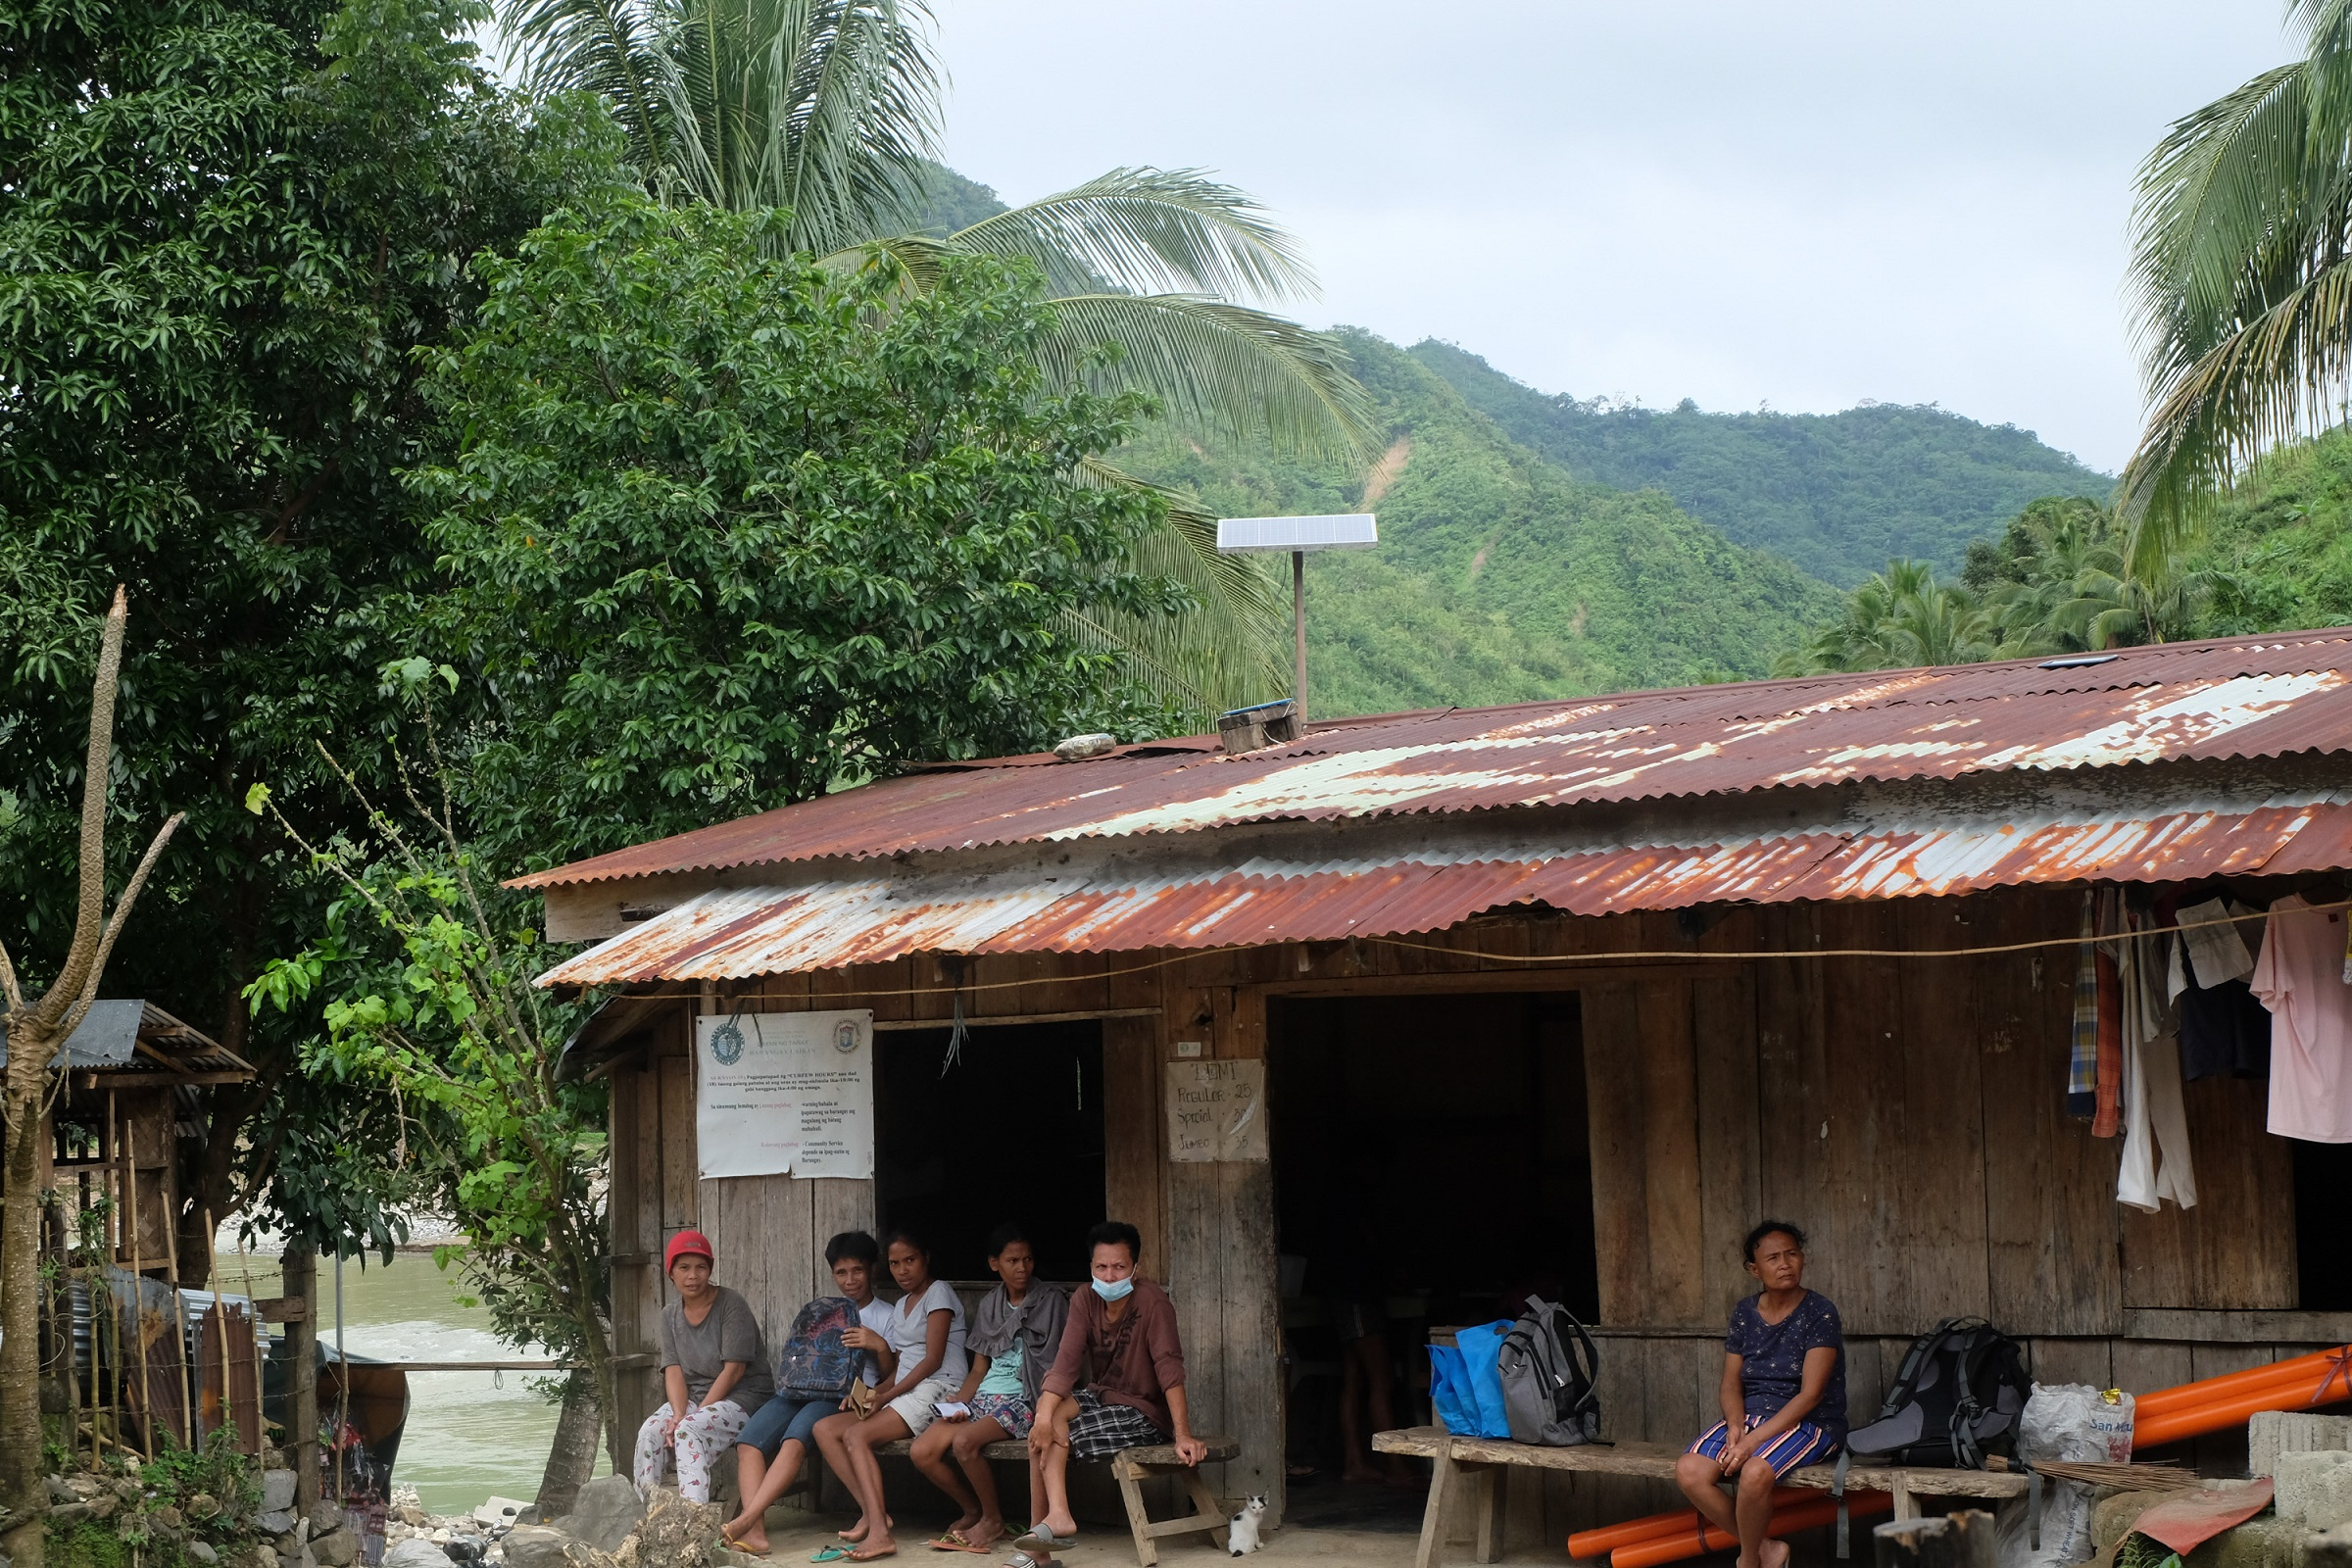 No electricity? Typhoon survivors, NGOs seek solar solutions for tribal communities